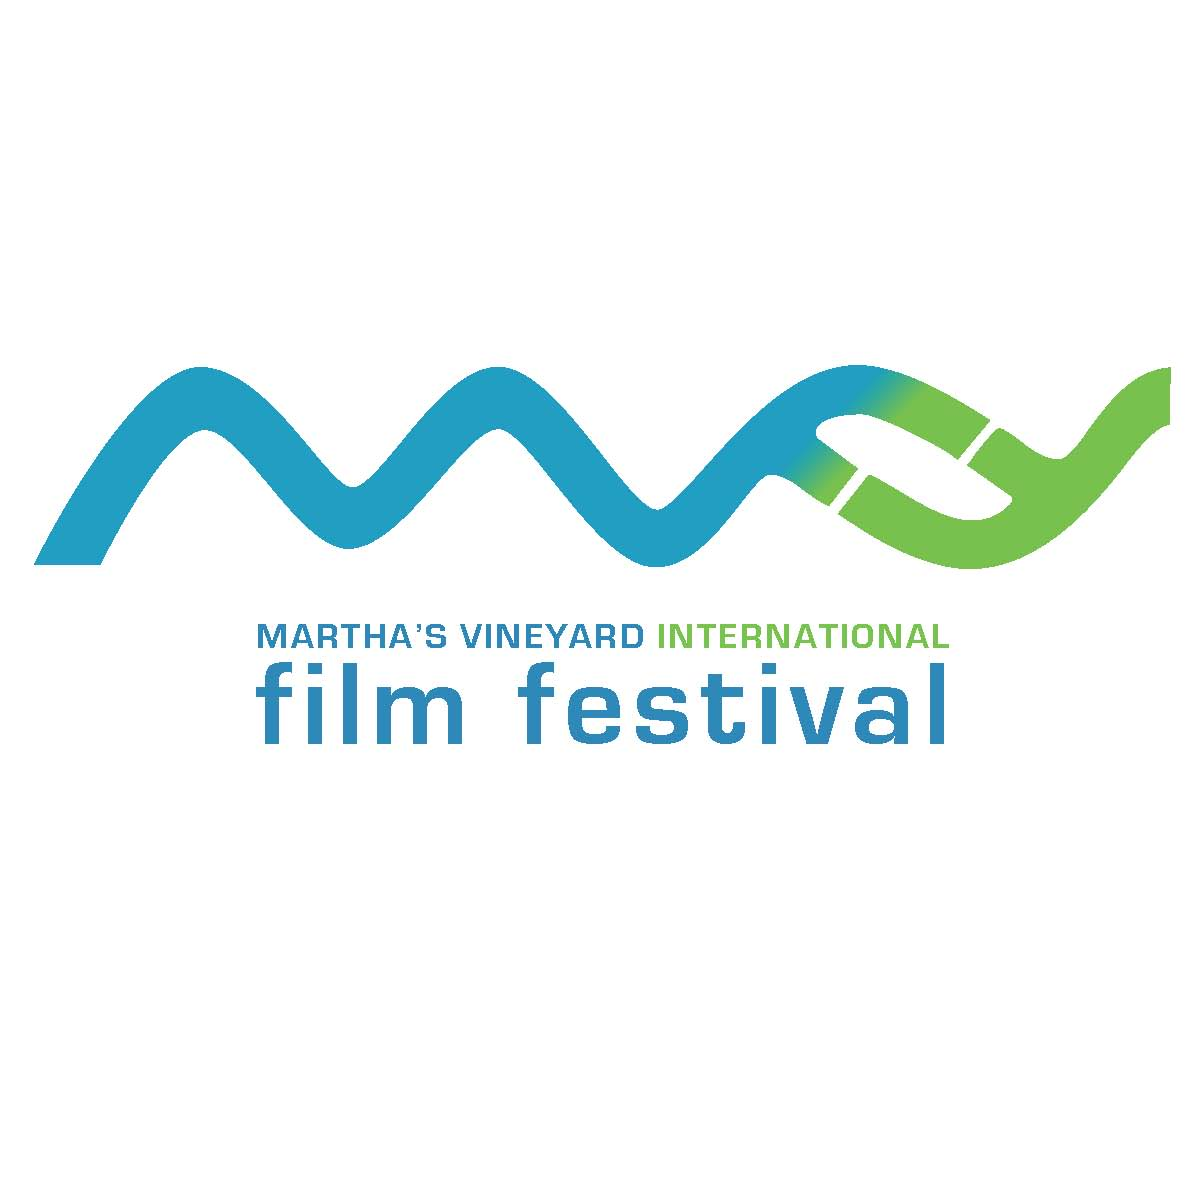 Martha's Vineyard International Film Festival/Martha's Vineyard Film Society